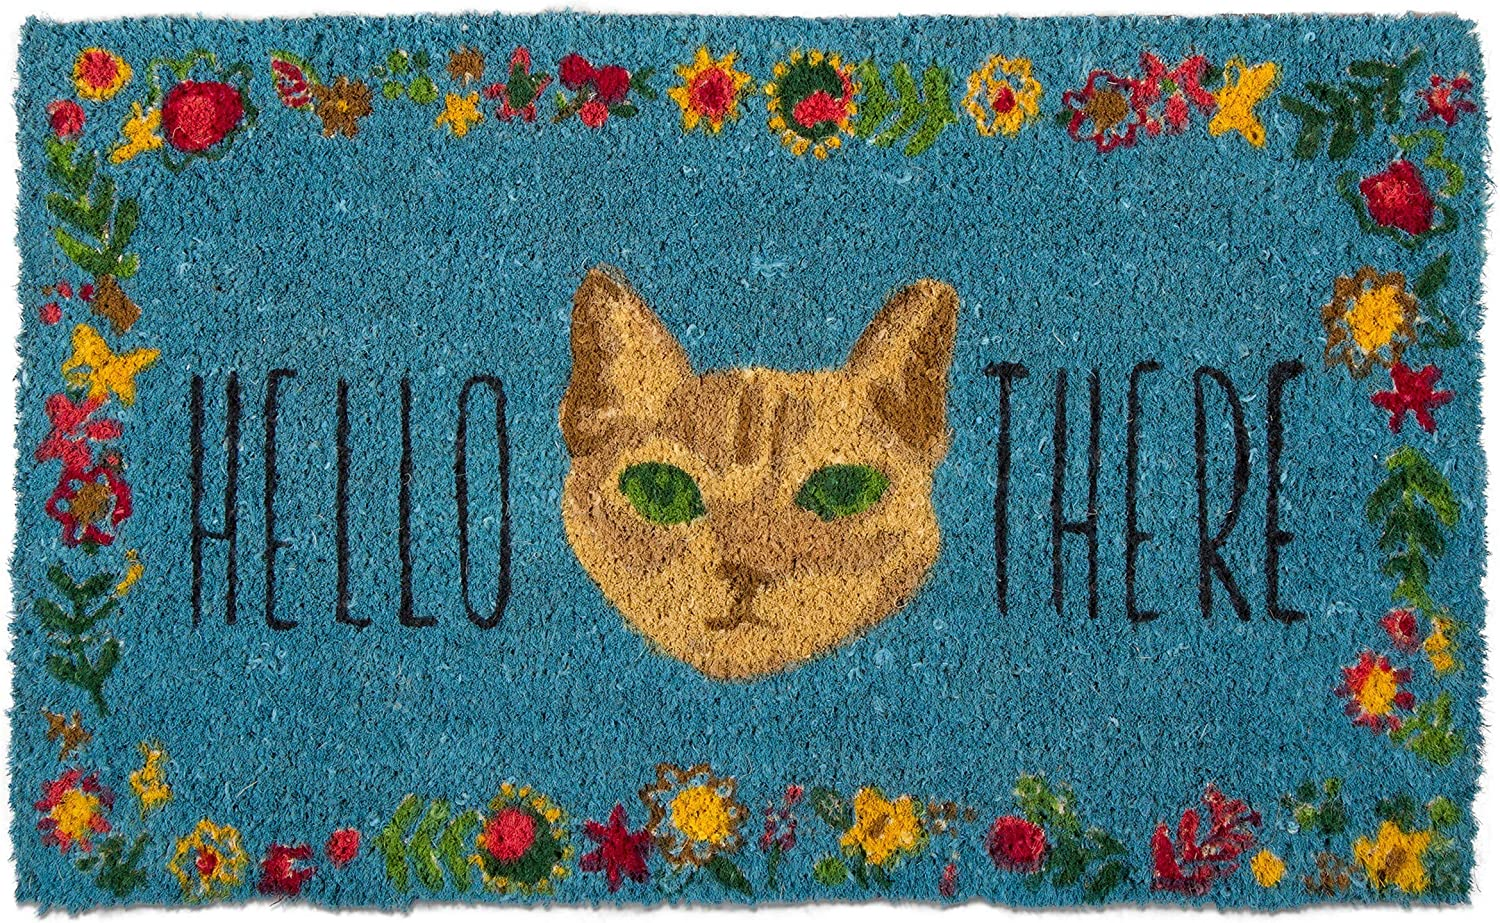 Tag Selling and selling Hello There Cat Kitten Kitty Door Indoo Pet Doormat Coir 2021 model Mat